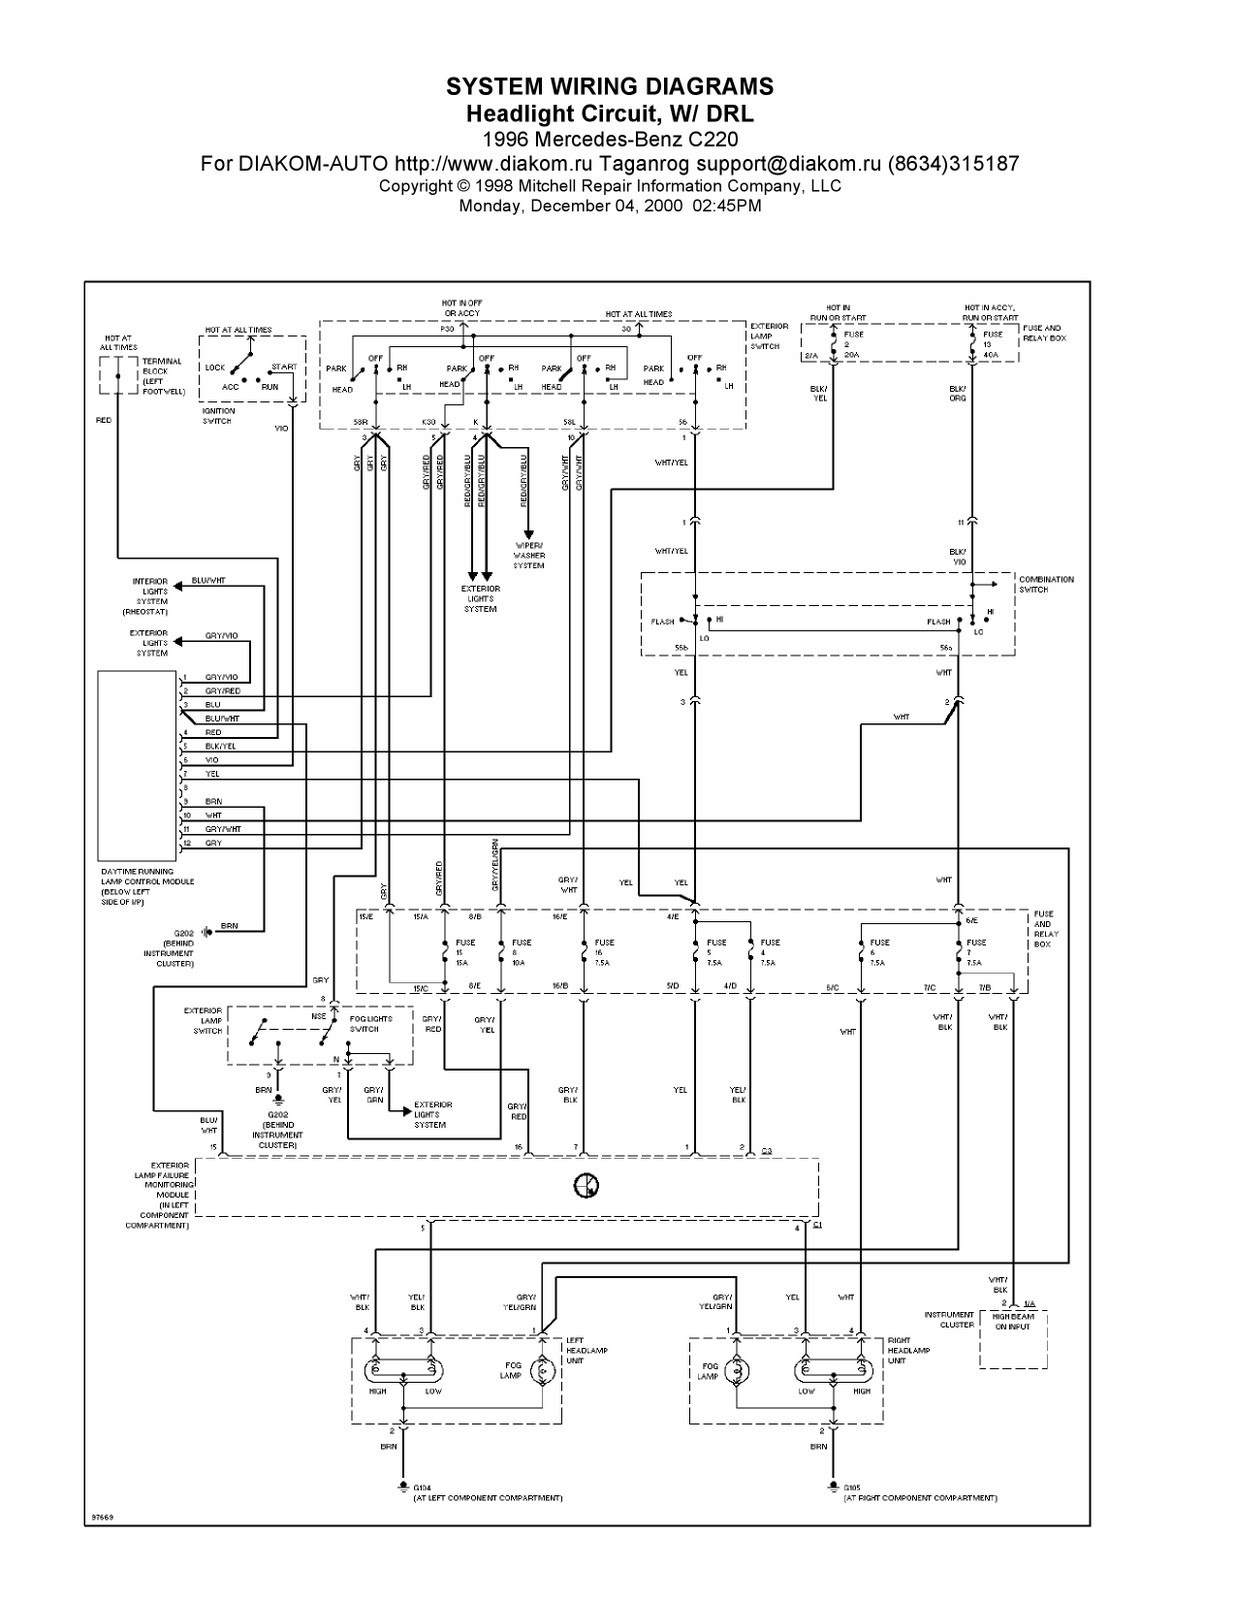 hight resolution of w124 air conditioner wiring diagram wiring diagrammercedes benz w209 wiring diagram free image wiring diagram enginemercedes